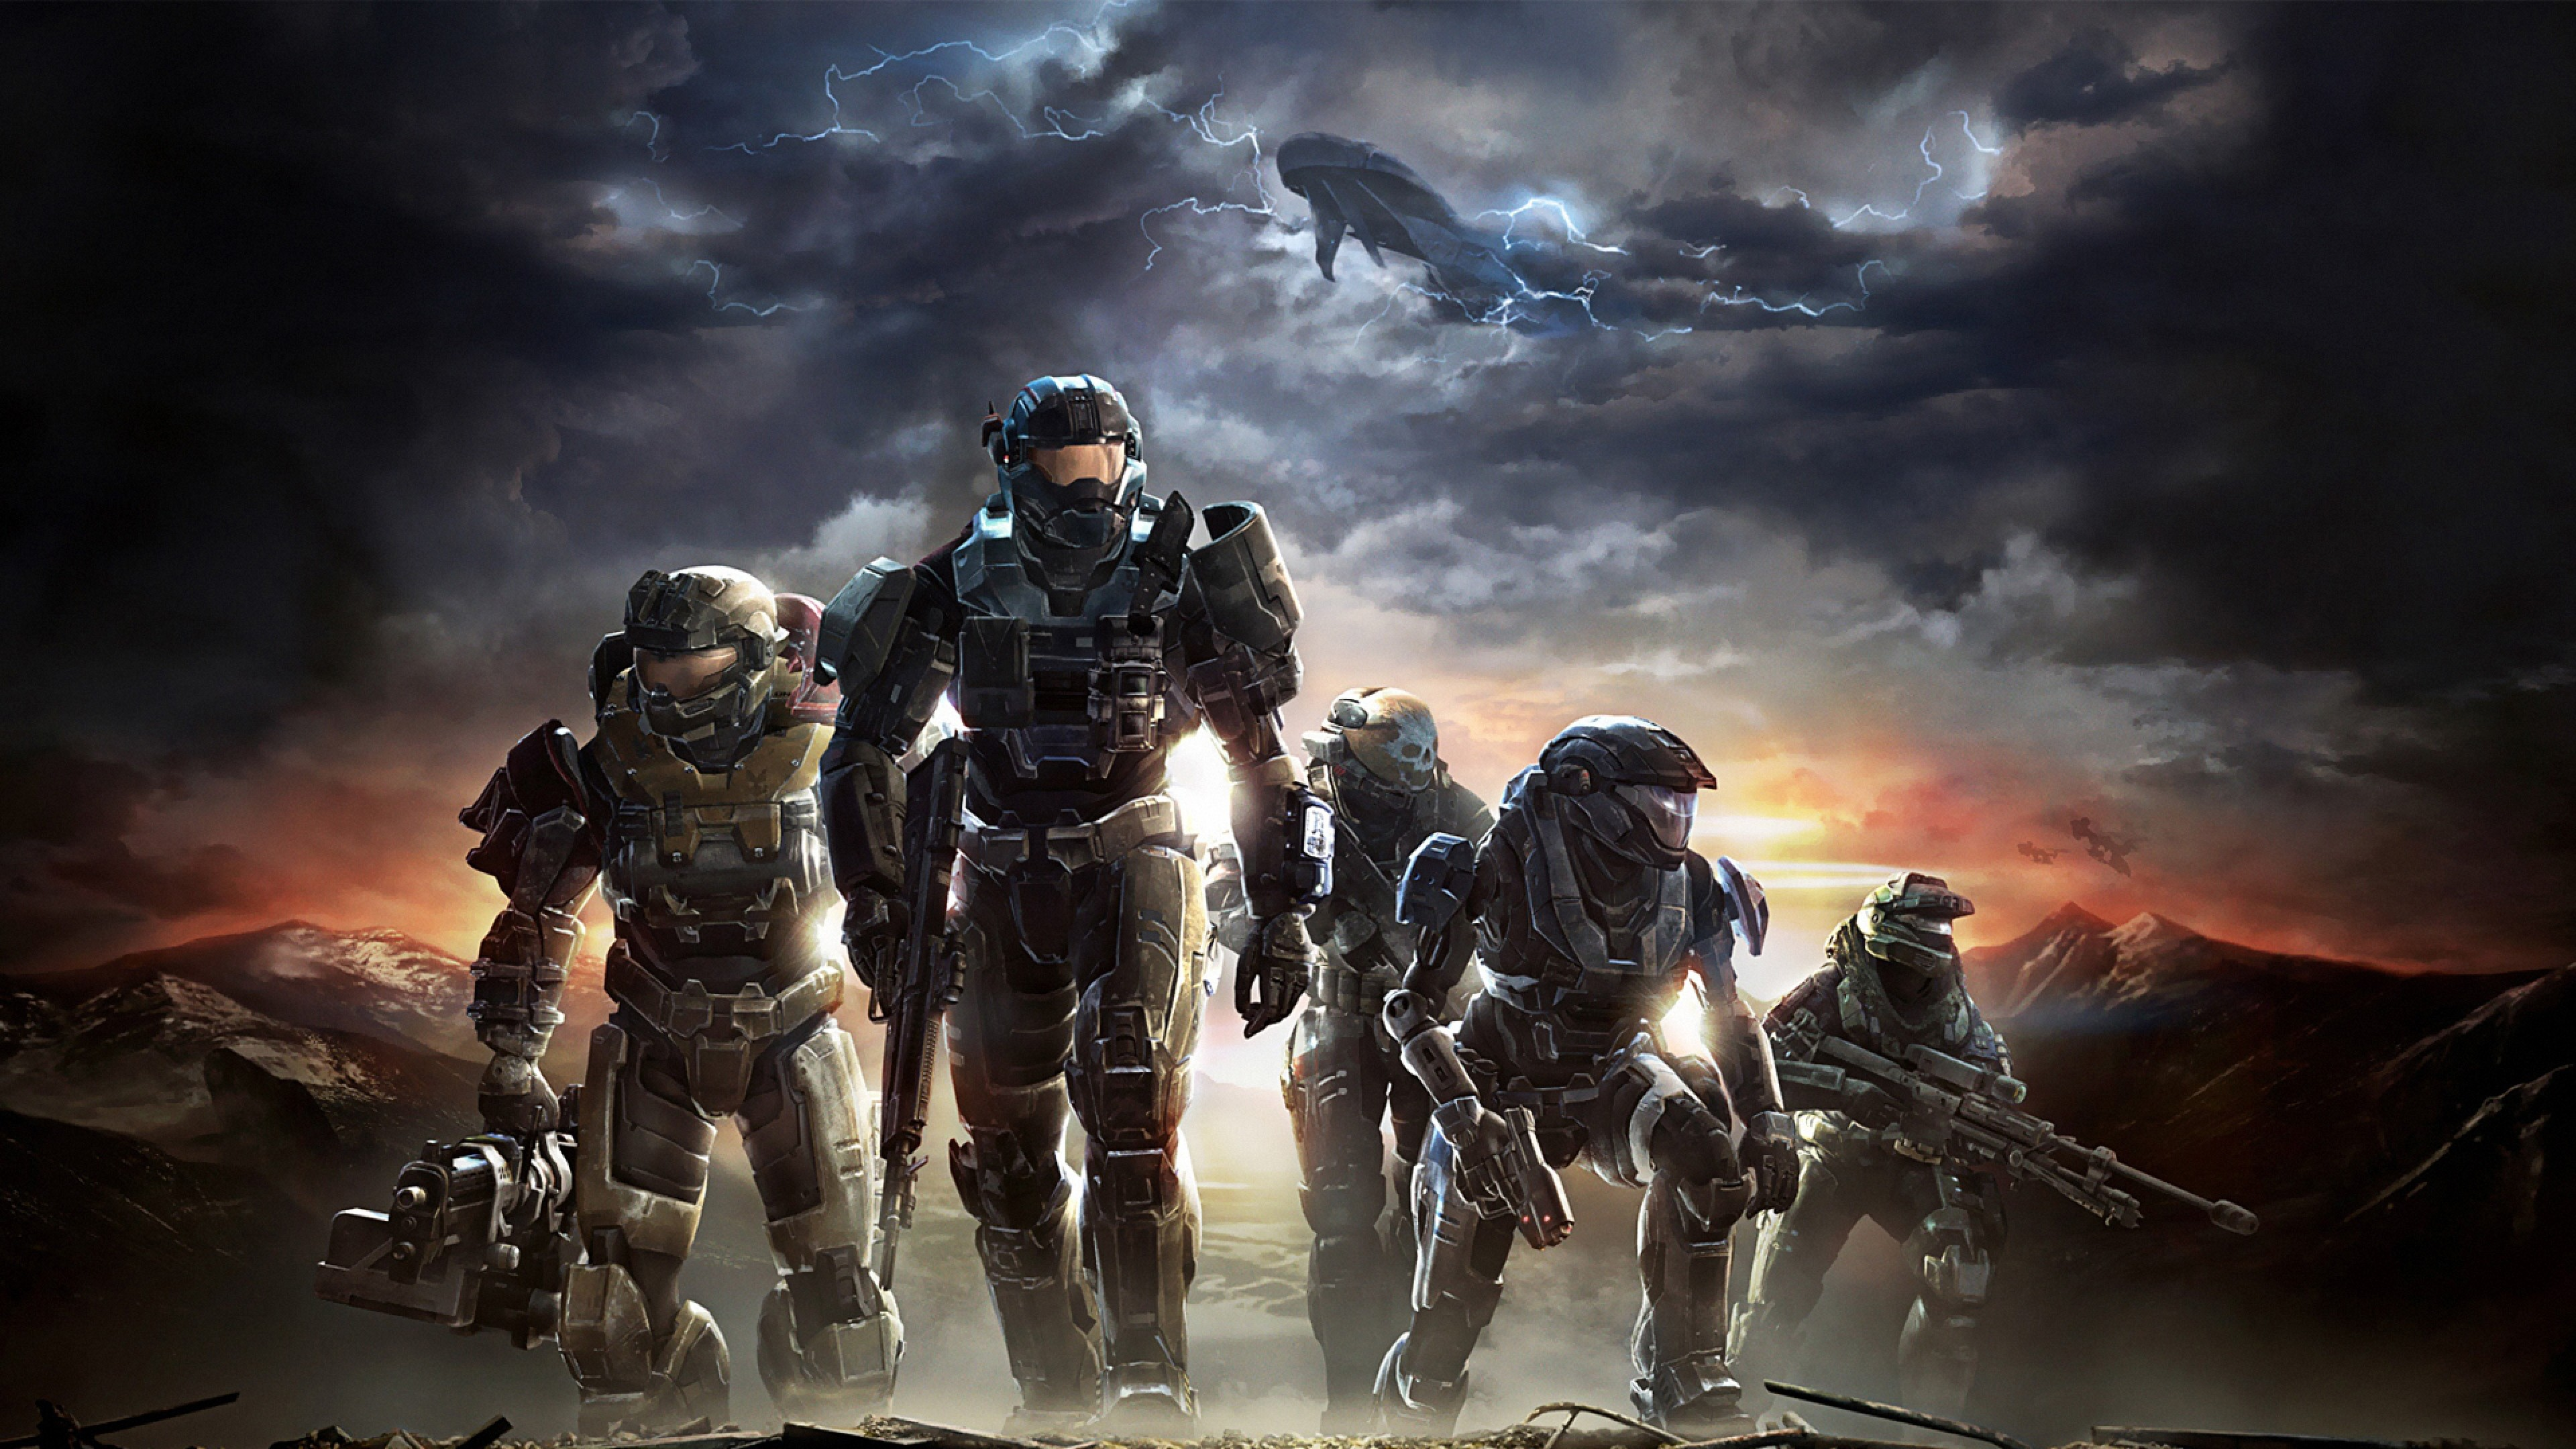 3840x2160 Download Wallpaper  halo soldiers sky clouds mountains 4K